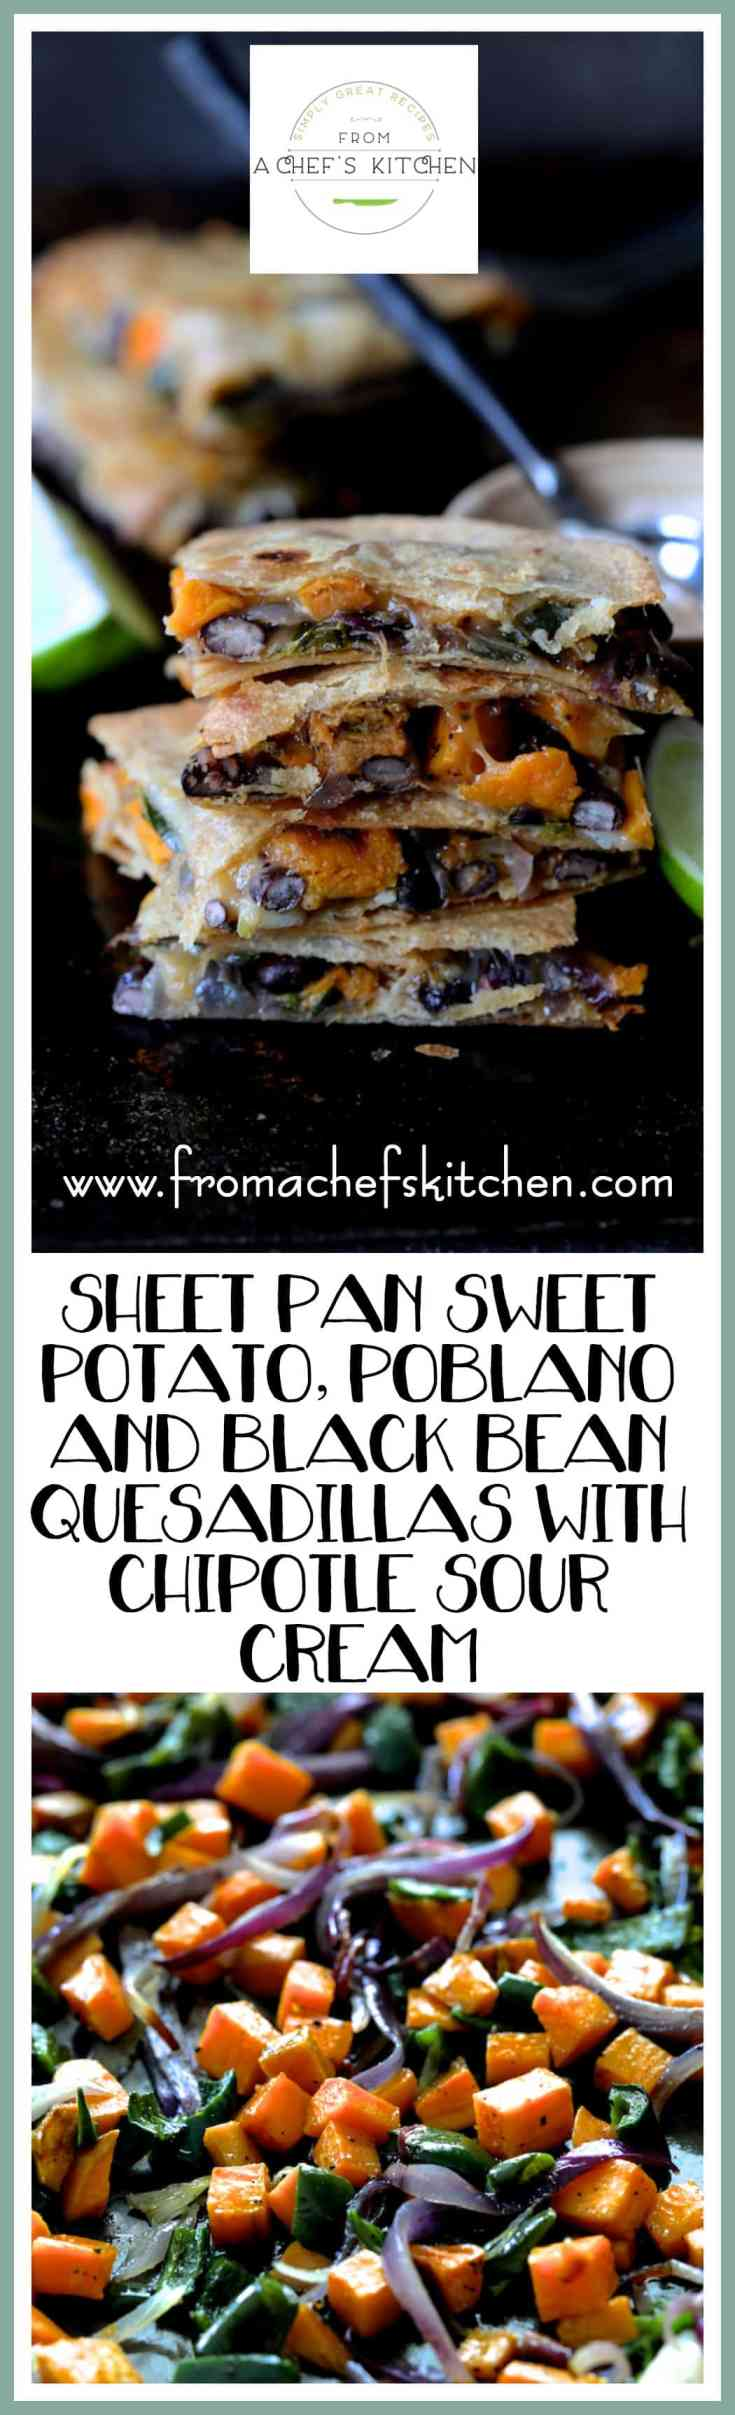 Sheet Pan Quesadillas with Sweet Potatoes, Poblanos and Black Beans with Chipotle Sour Cream are a delicious light vegetarian meal or appetizer!  #quesadilla #vegetarian #sweetpotato #poblano #chipotle